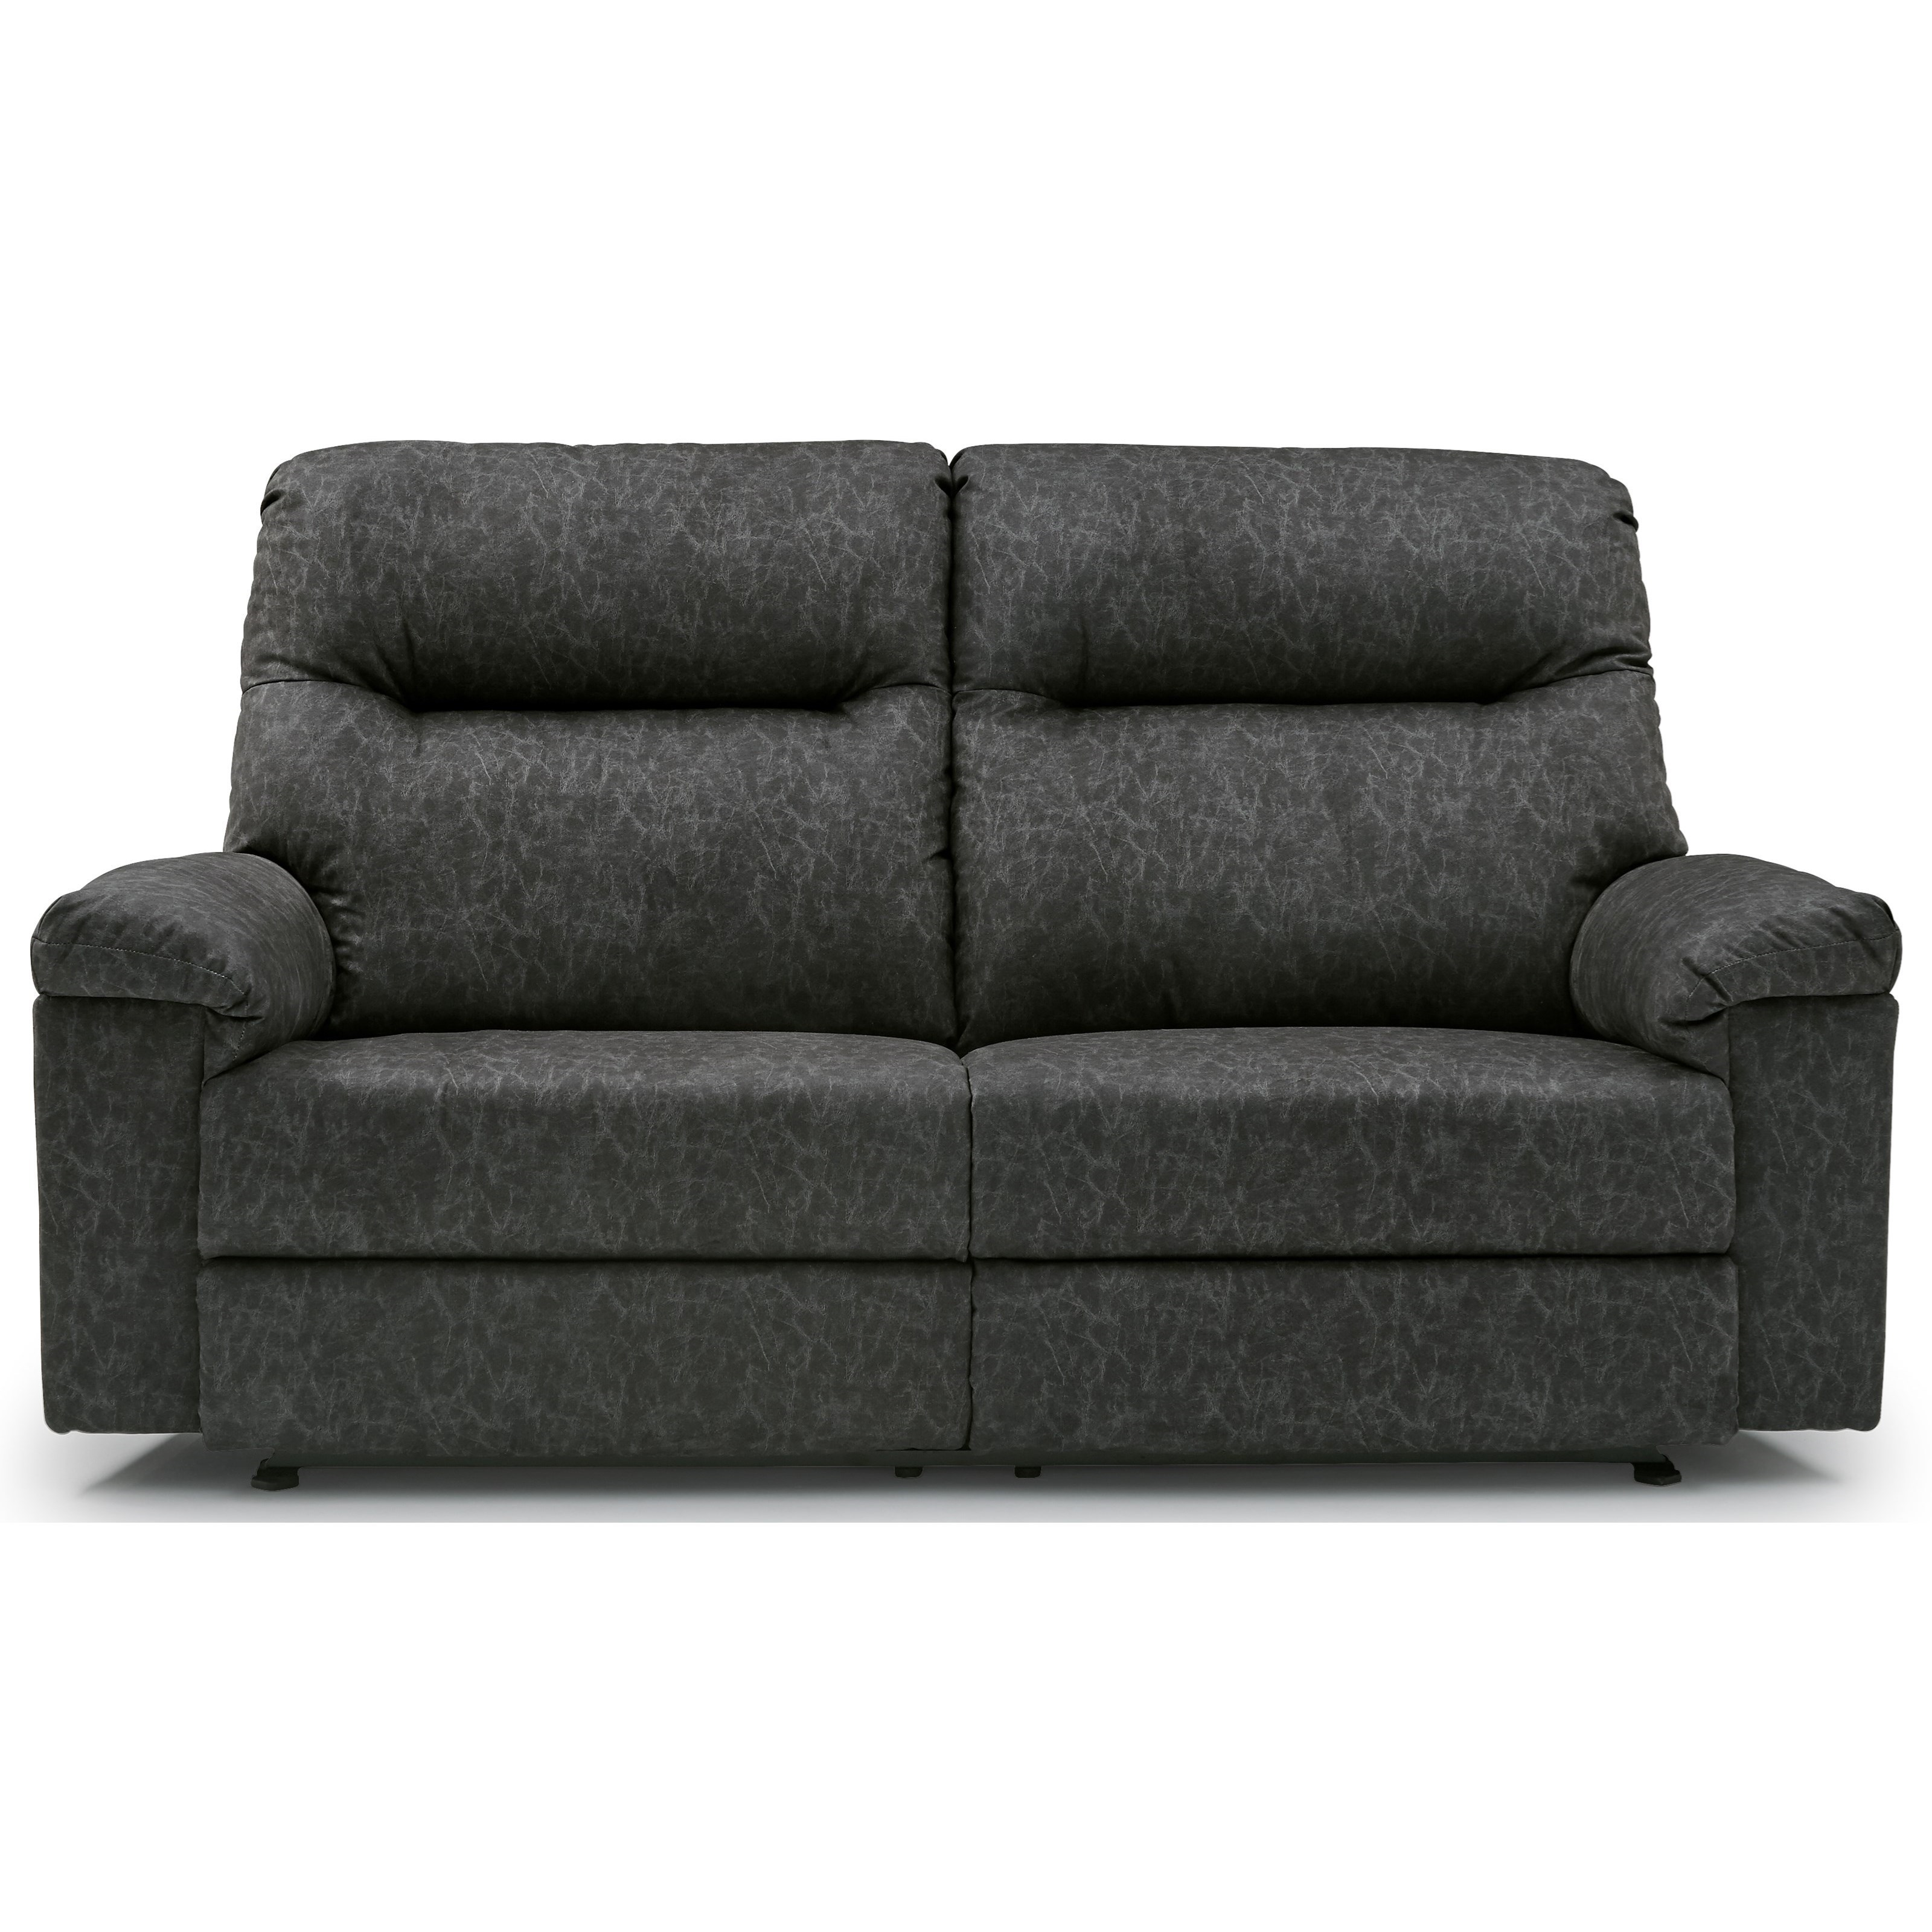 wall sofa sabrina best home furnishings bayley casual saver reclining with pillow arms